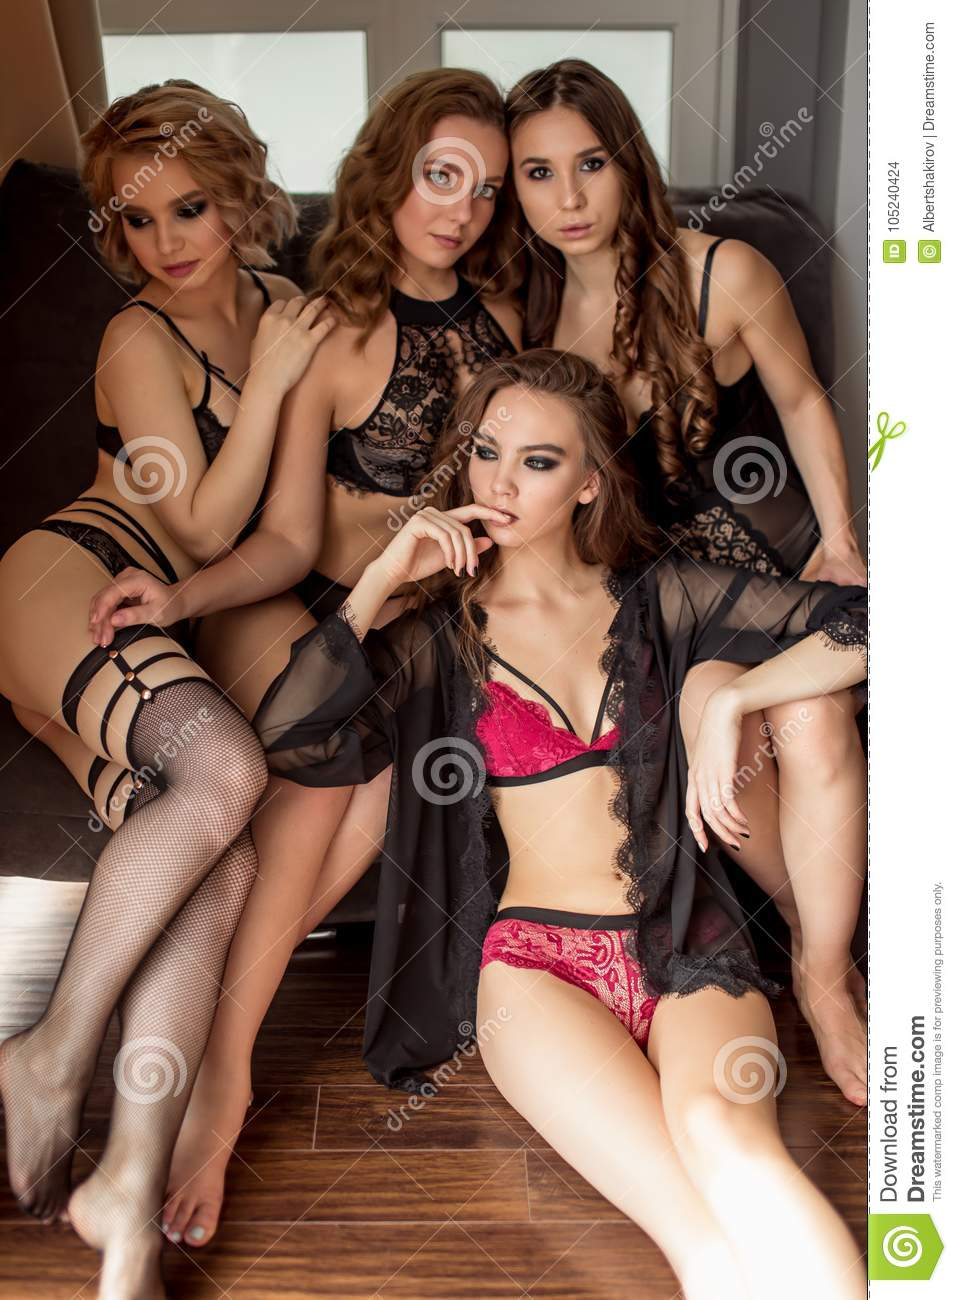 Four Models Posing In Lingerie